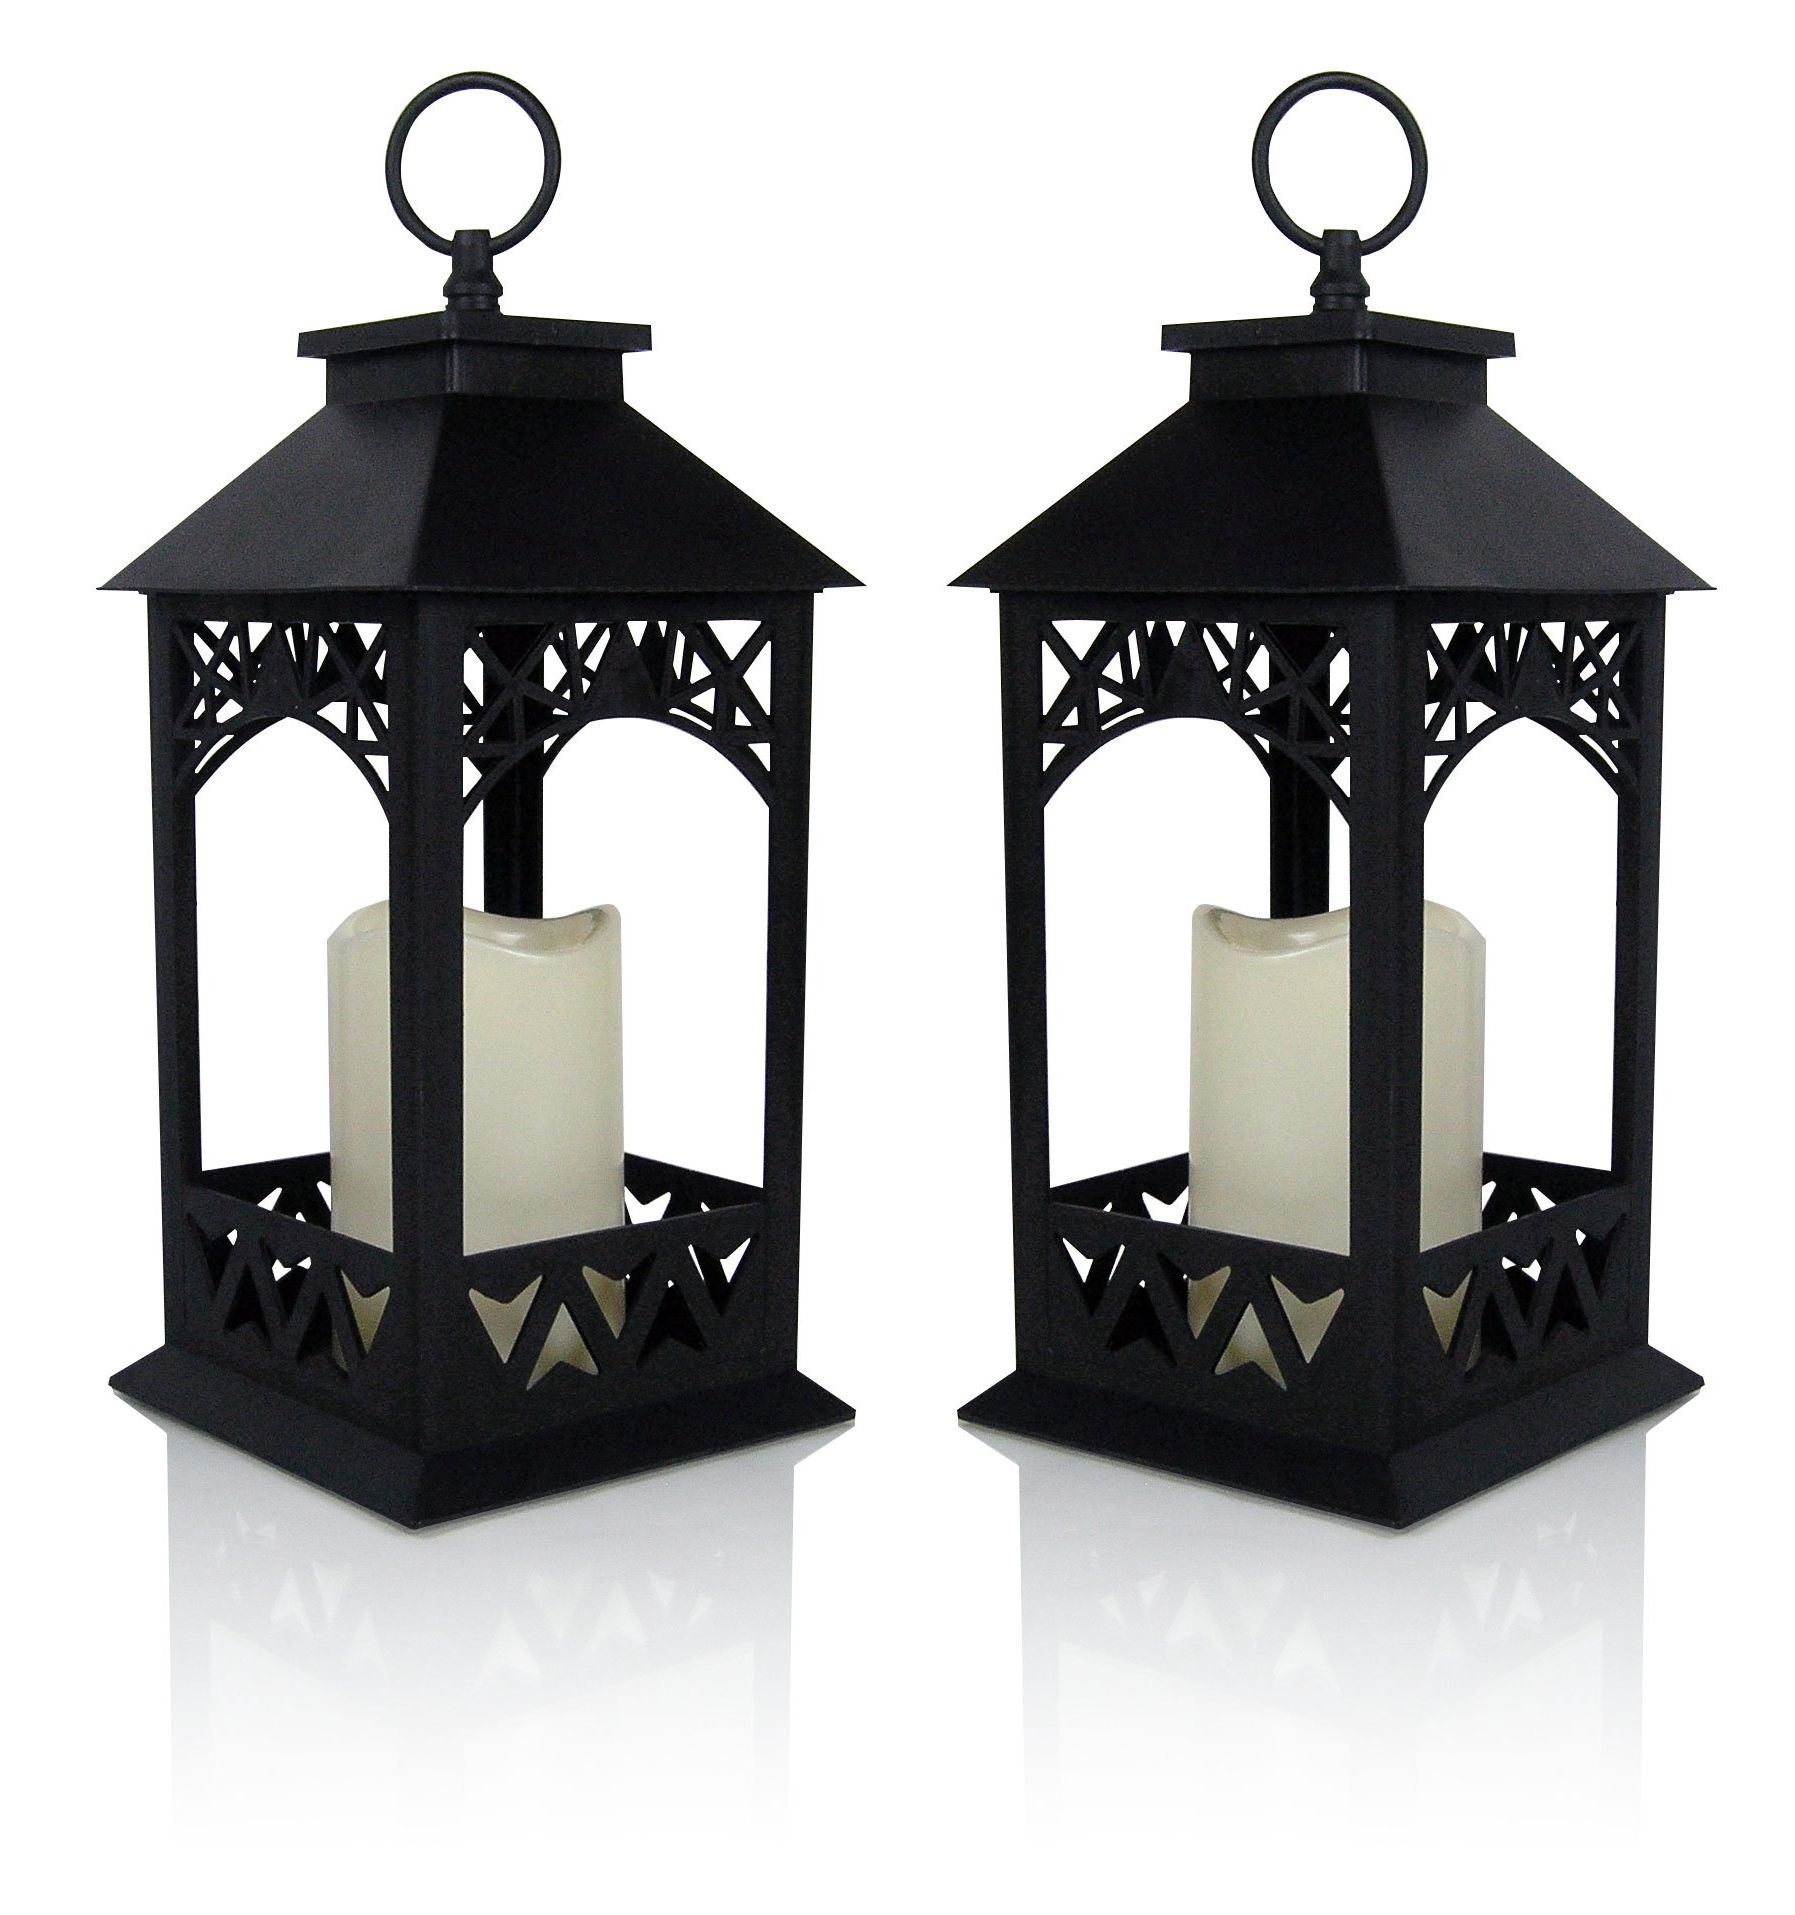 Cheap Outdoor Lanterns Candle, Find Outdoor Lanterns Candle Deals On Within Well Known Outdoor Lanterns With Timers (Gallery 7 of 20)